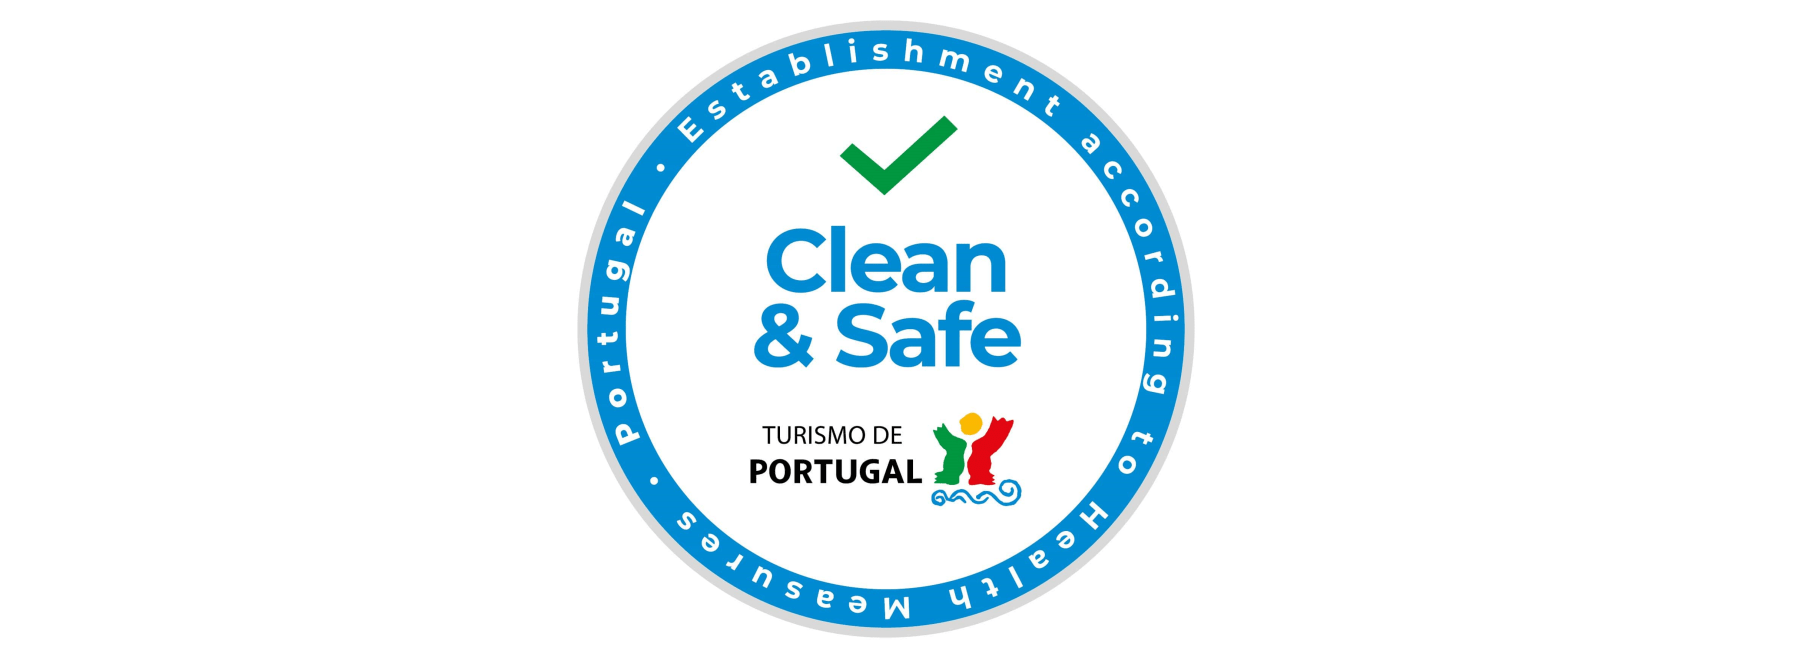 treasures of Lisboa Food Tours received the Safe and Clean distinction from Turism of Portugal